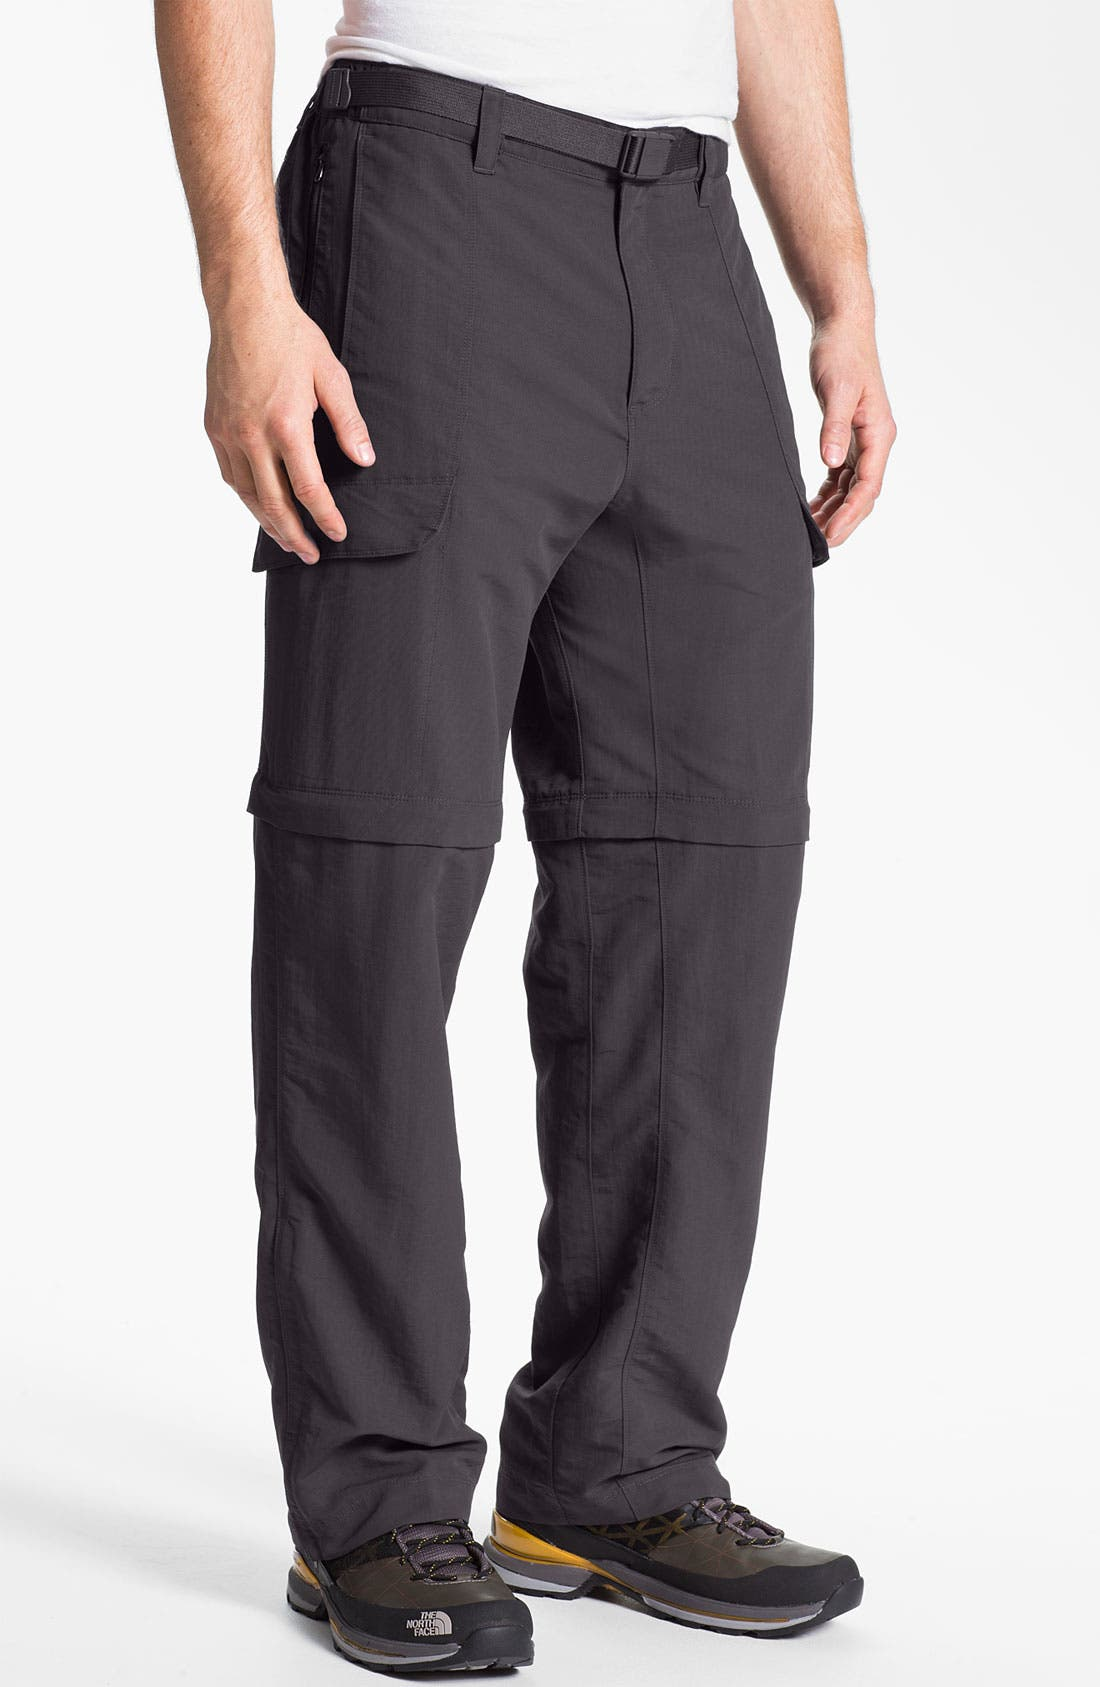 Main Image - The North Face 'Paramount Peak' Convertible Pants